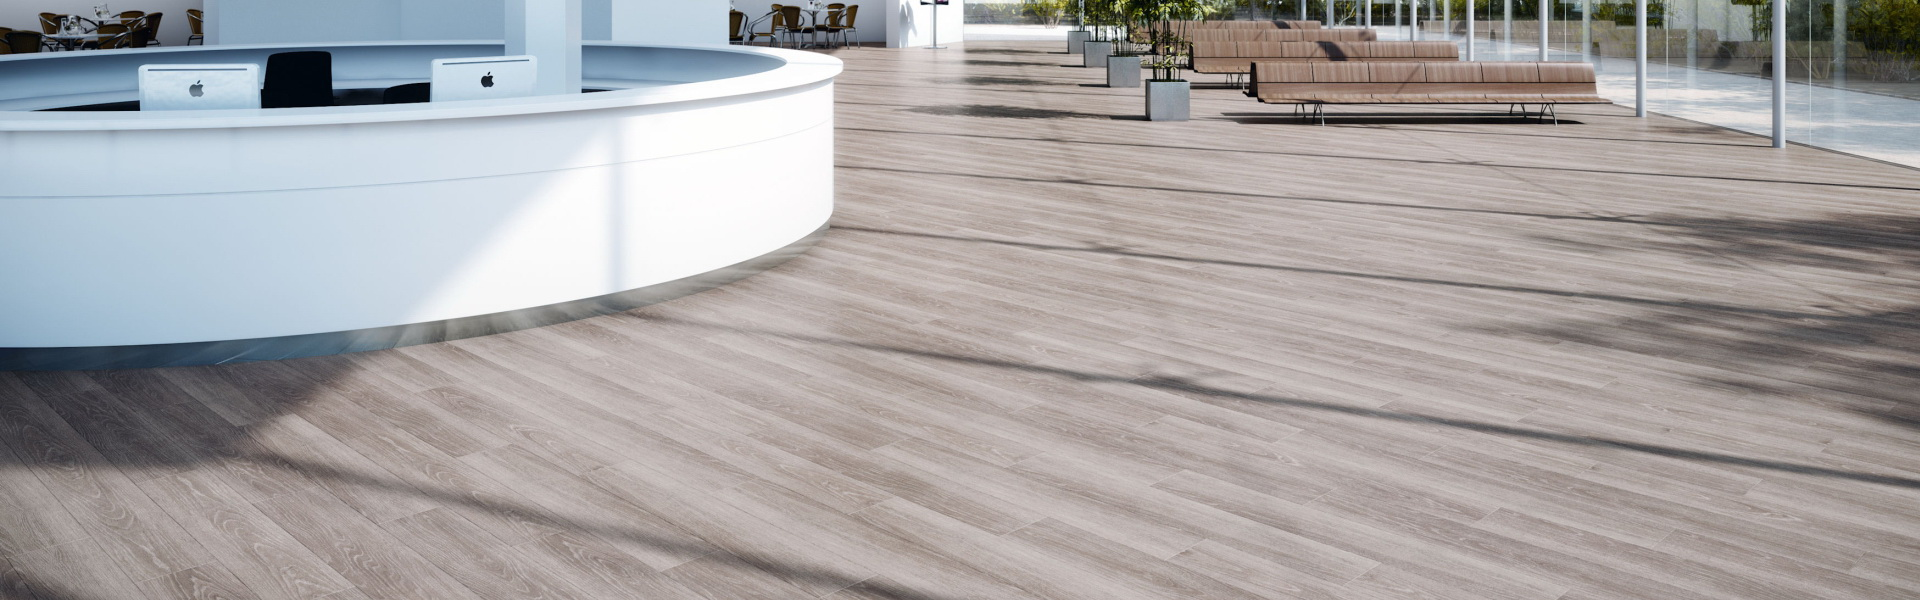 LVT Luxury vinyl tiles